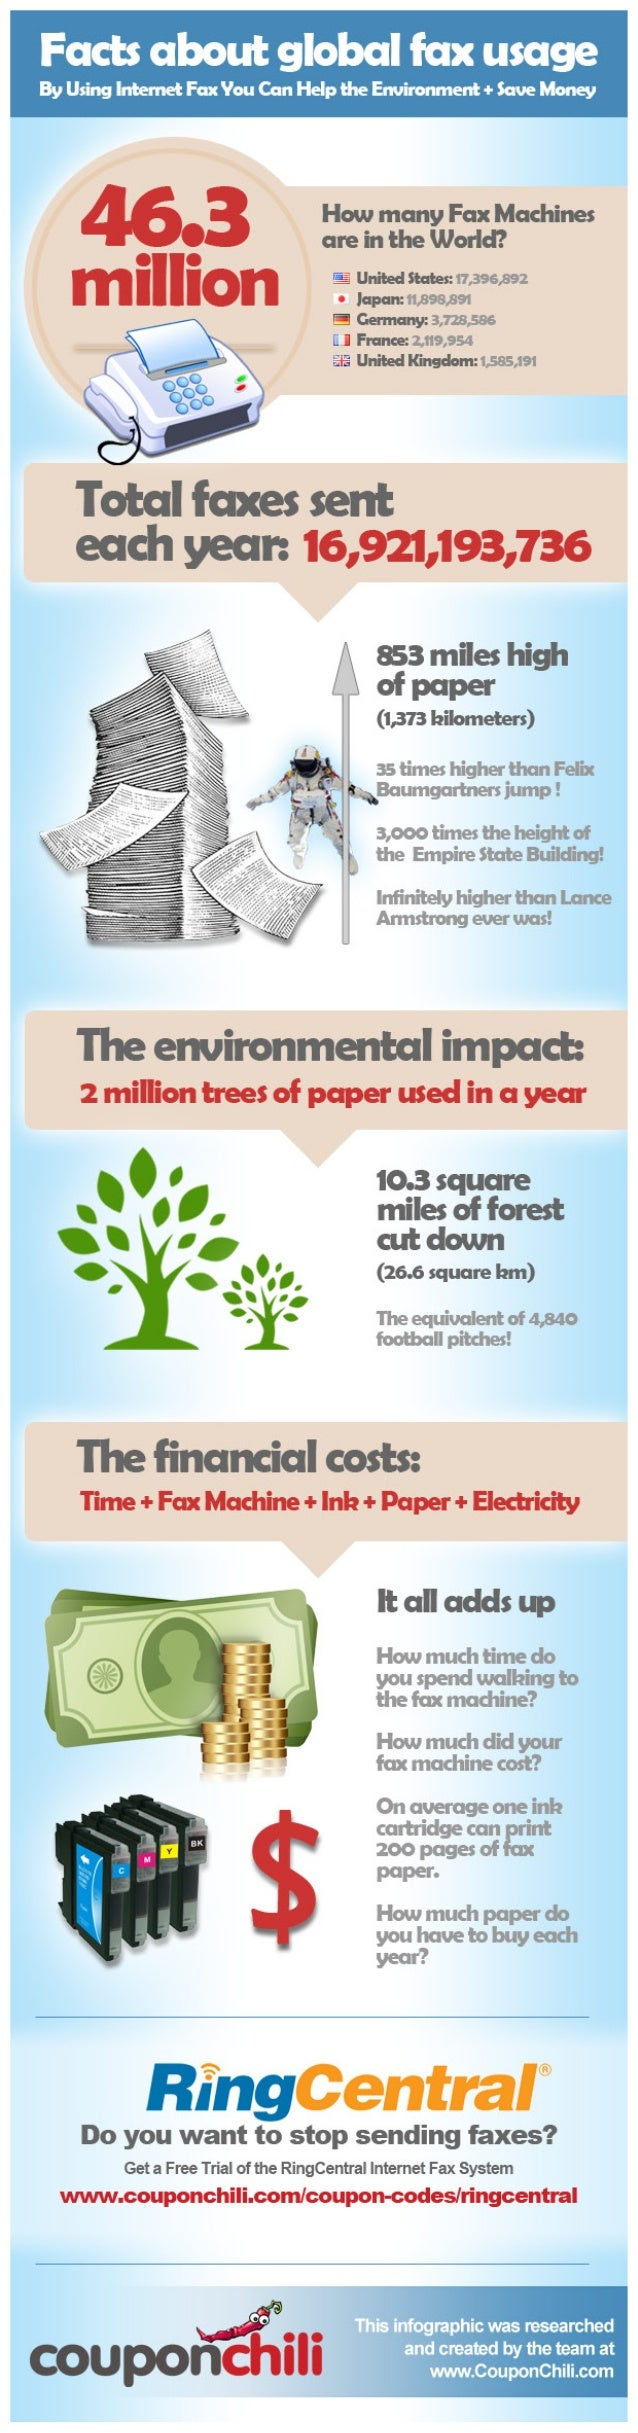 Facts About Global Fax Usage